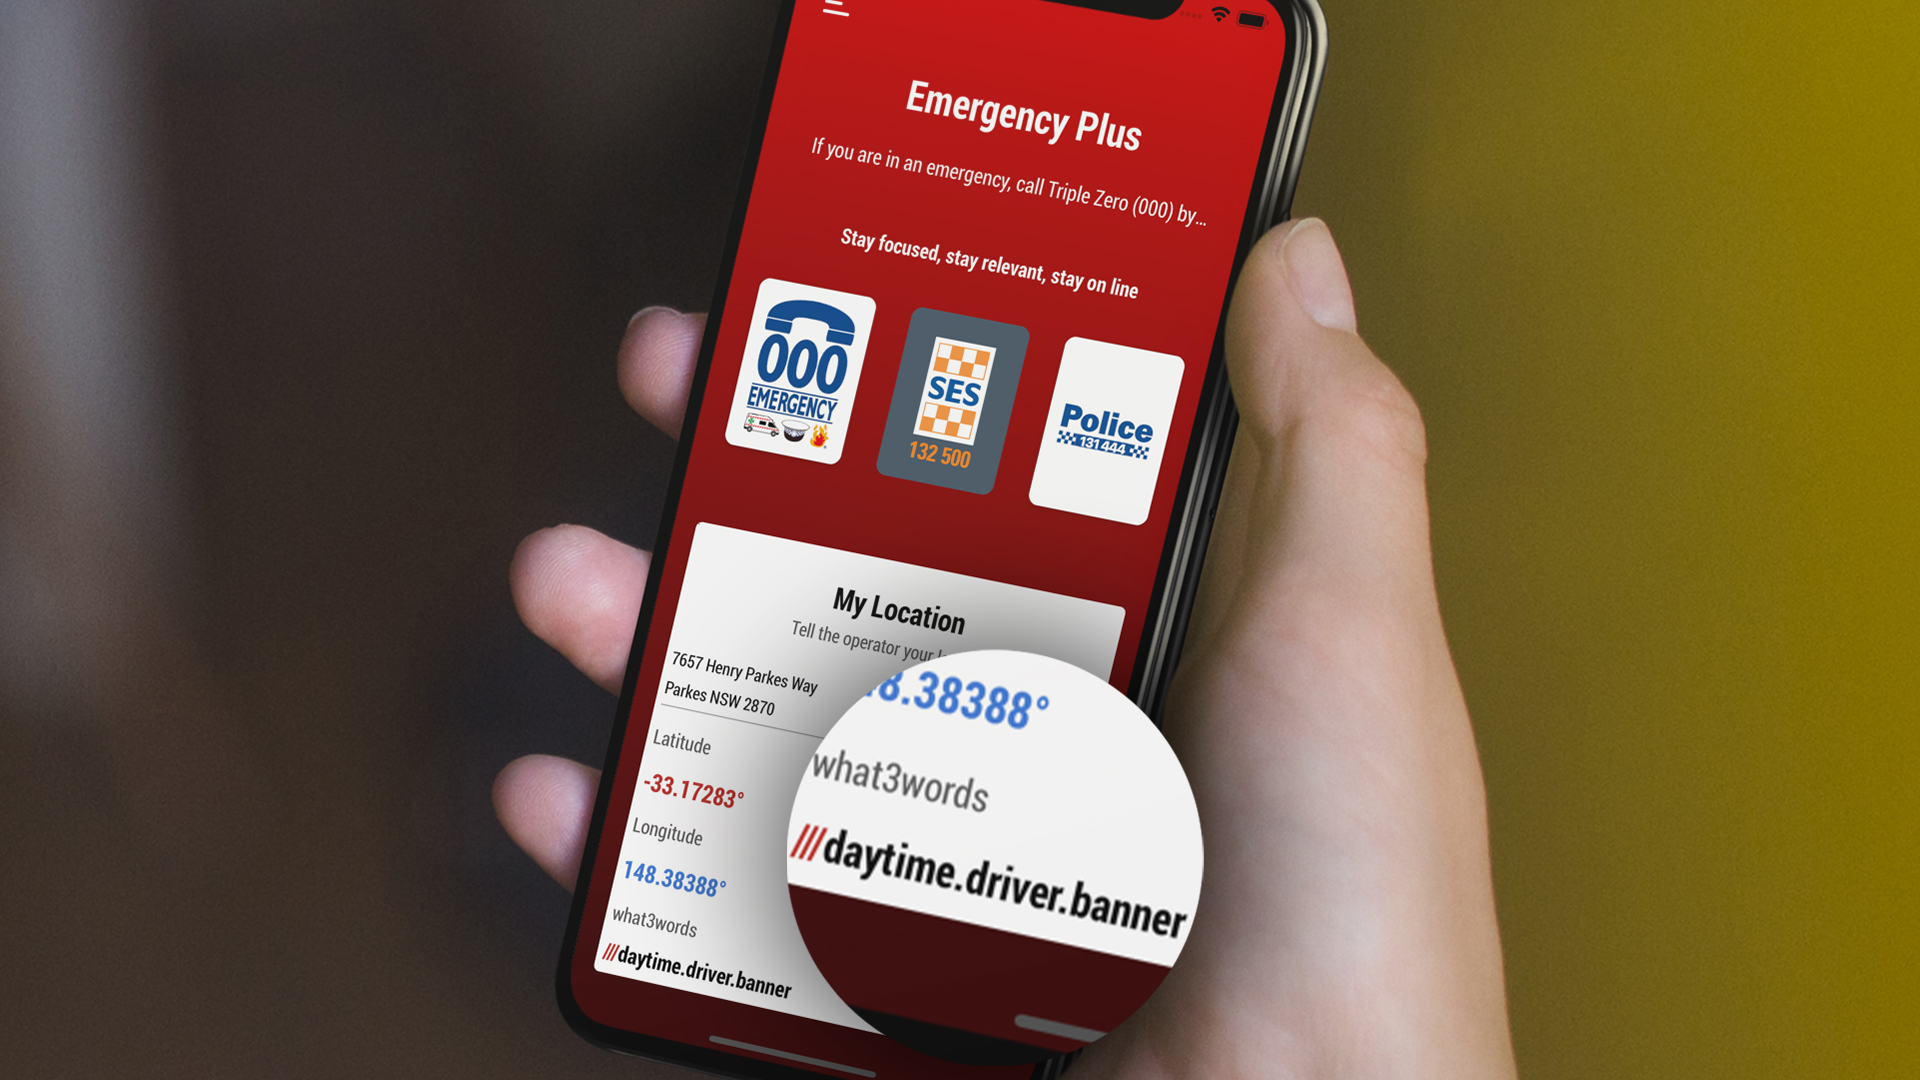 Emergency plus app featuring what3words address on phone